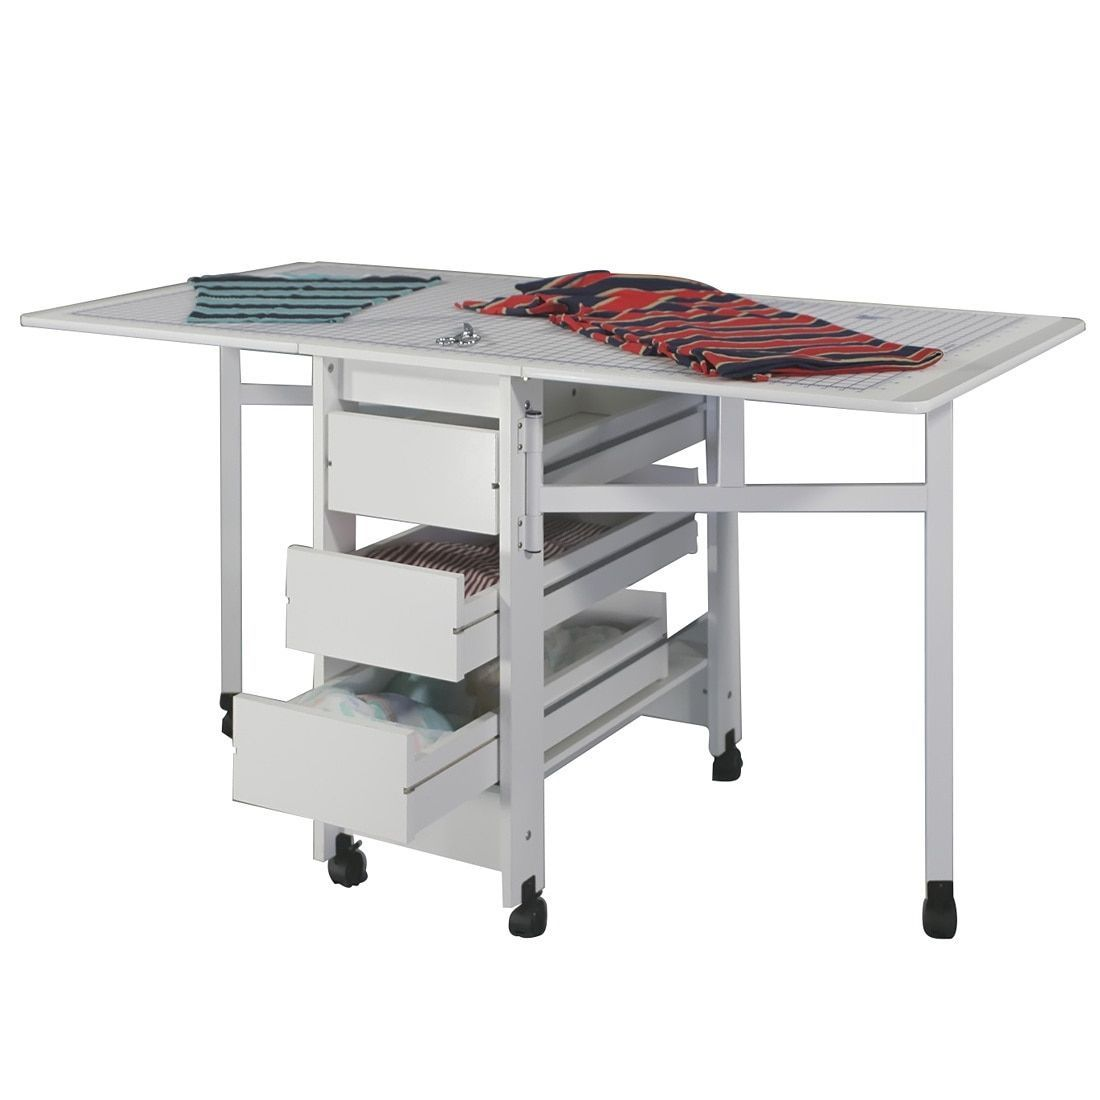 This Fold Out Cutting And Craft Table Provides 6 Feet Of Work Space When  Open, Yet Takes Up Less Than Two Feet Of Floor Space When Closed.